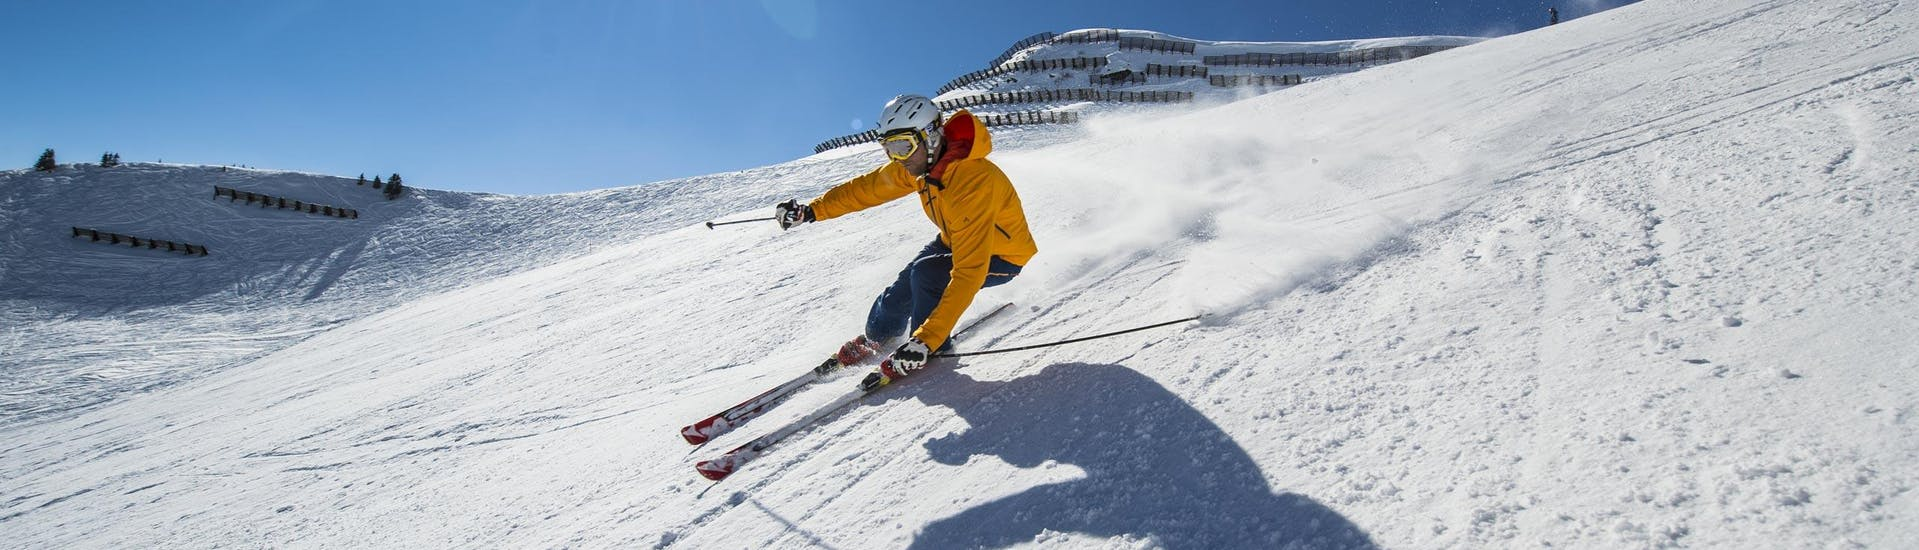 Family Ski Lessons for Advanced Skiers: A skier is skiing down a sunny ski slope while participating in an activity offered by NTC SPORTS Ski School Oberstdorf.